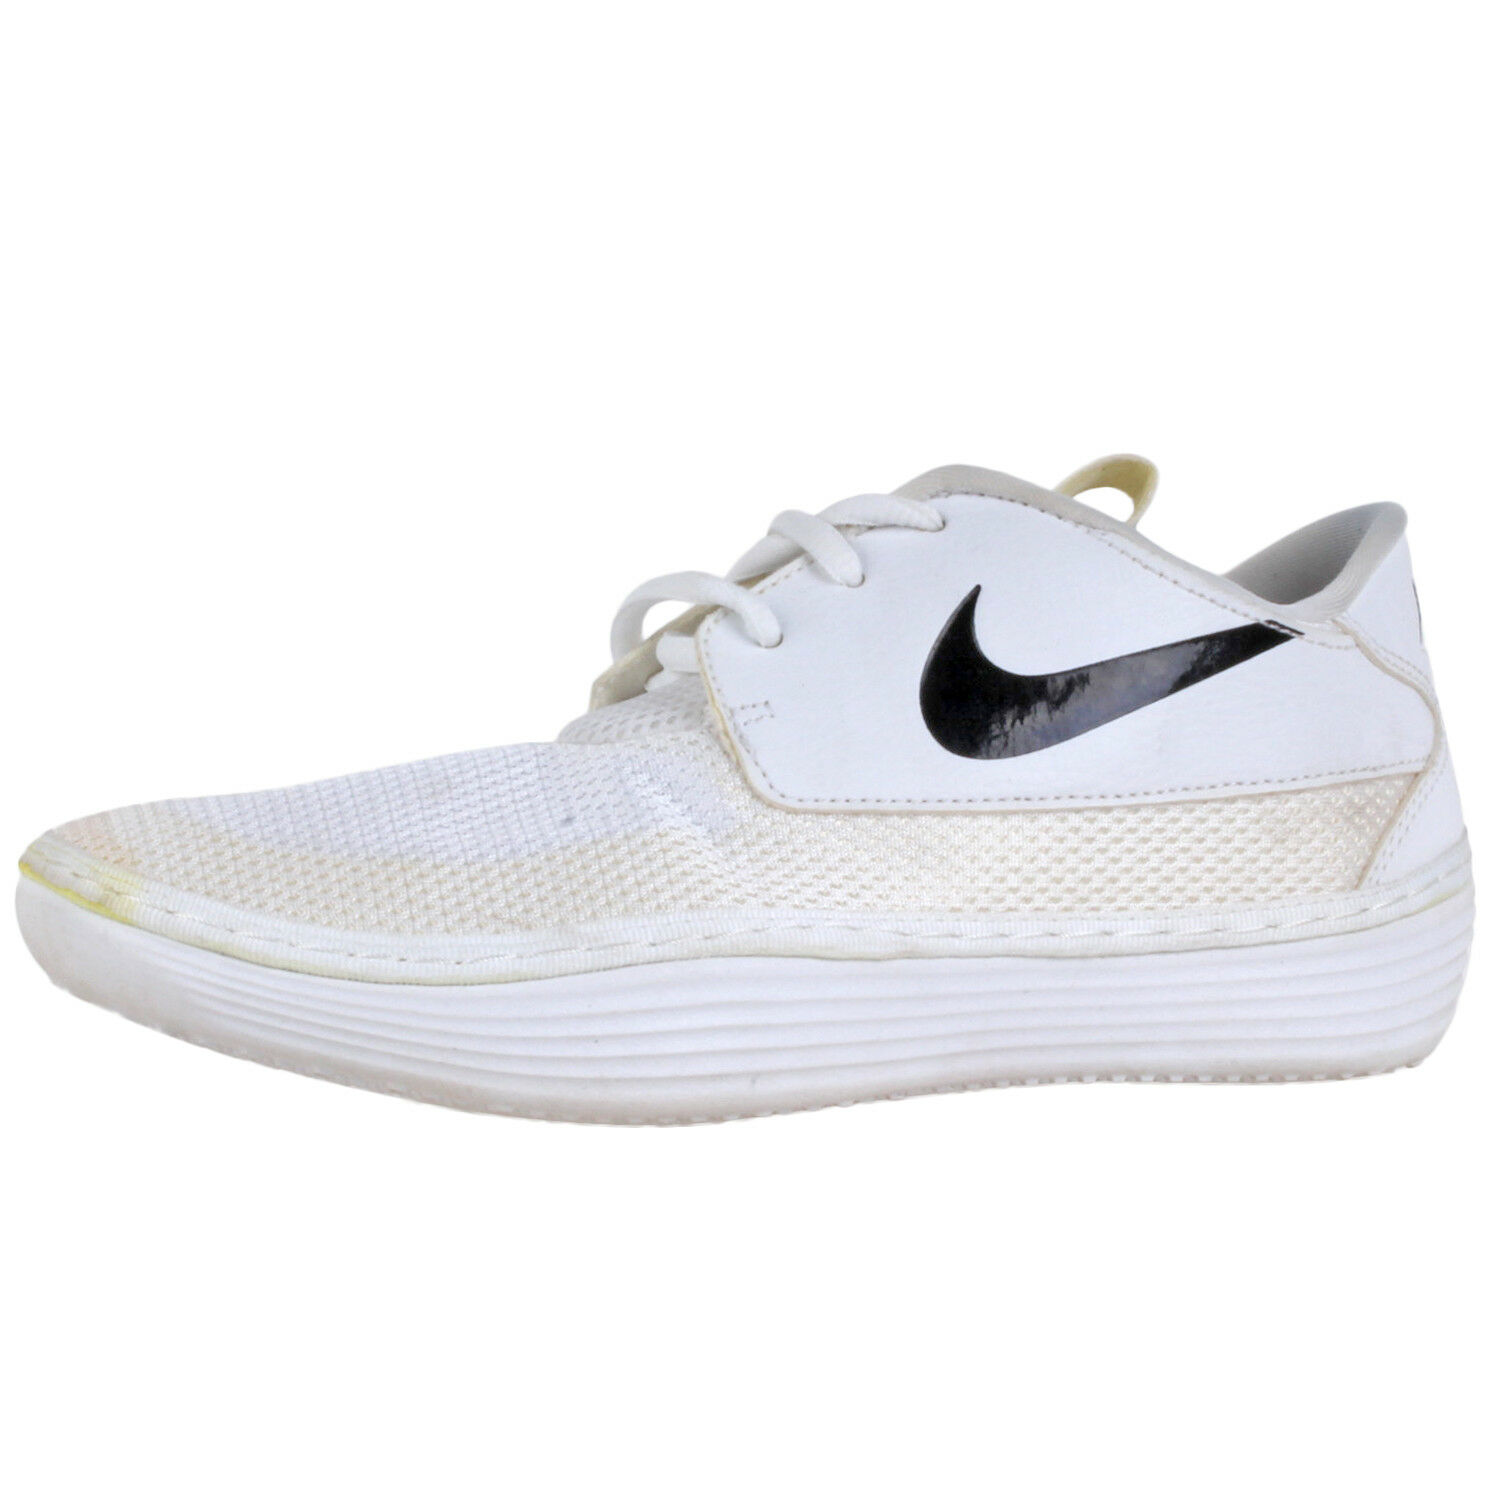 Nike Men's Solarsoft Moc 2 shoes  705518-101 Wht Sz 7